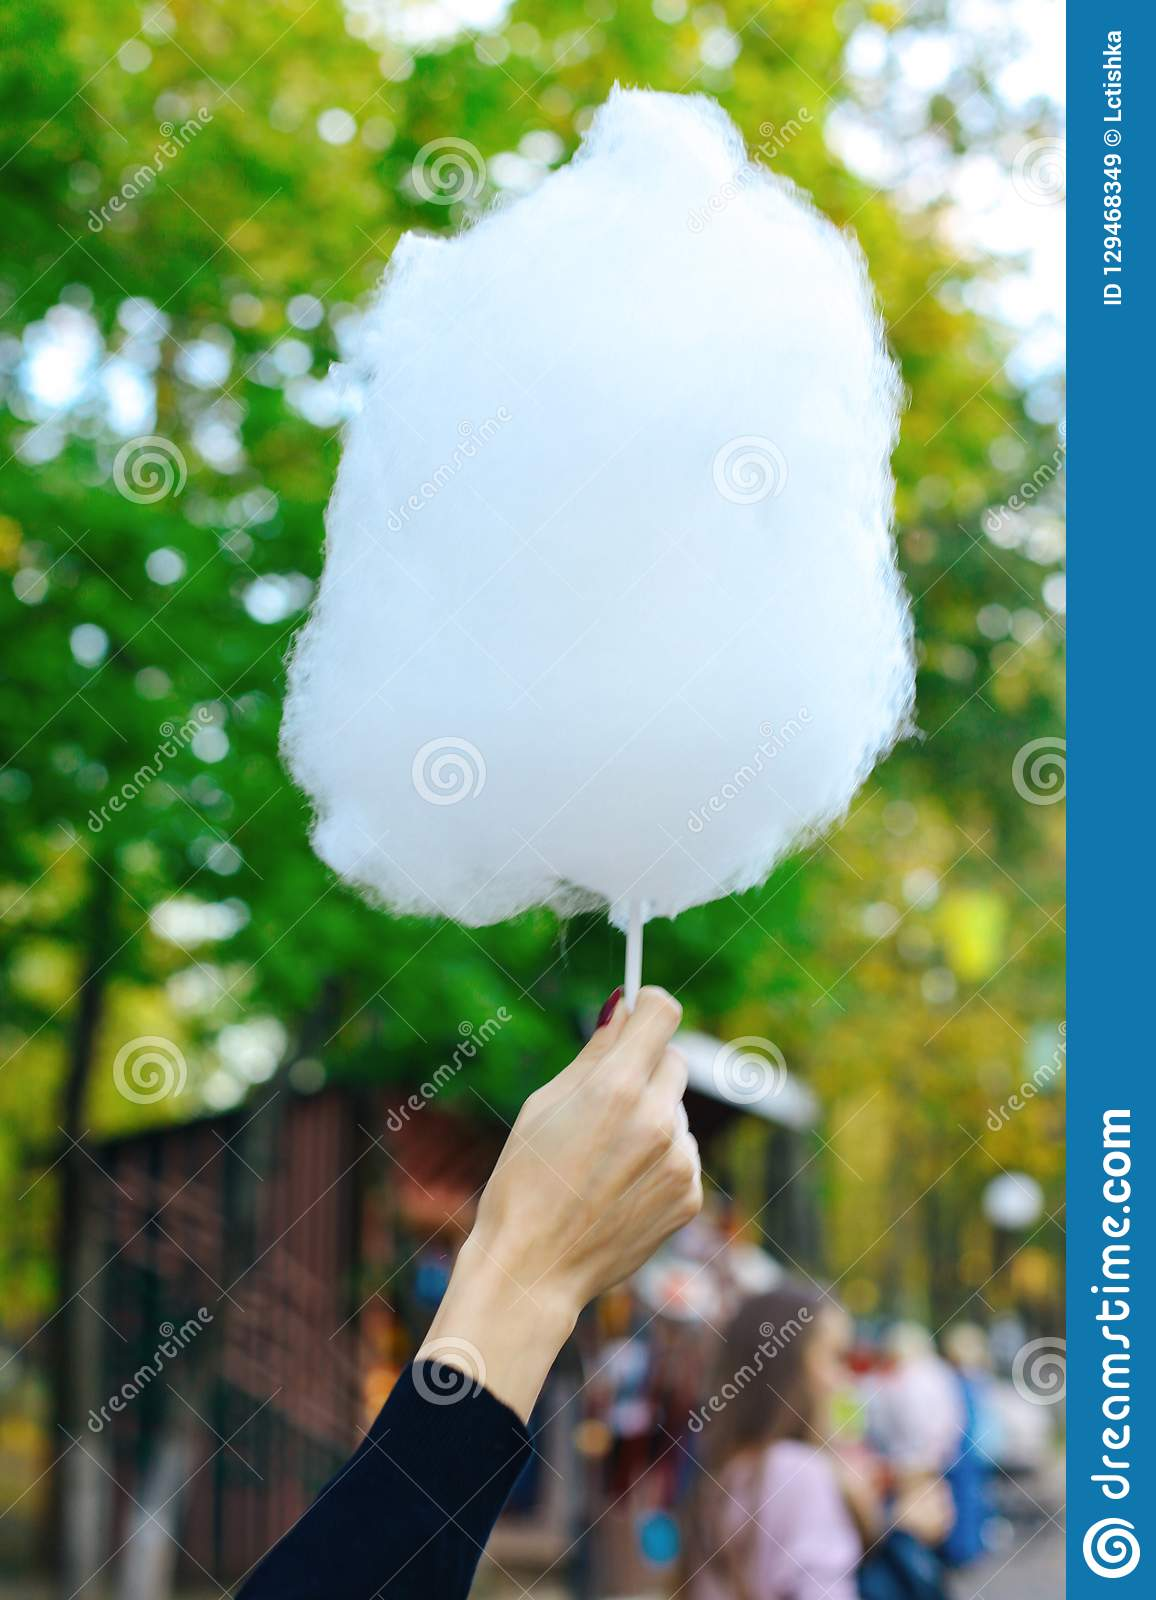 cotton candy in the